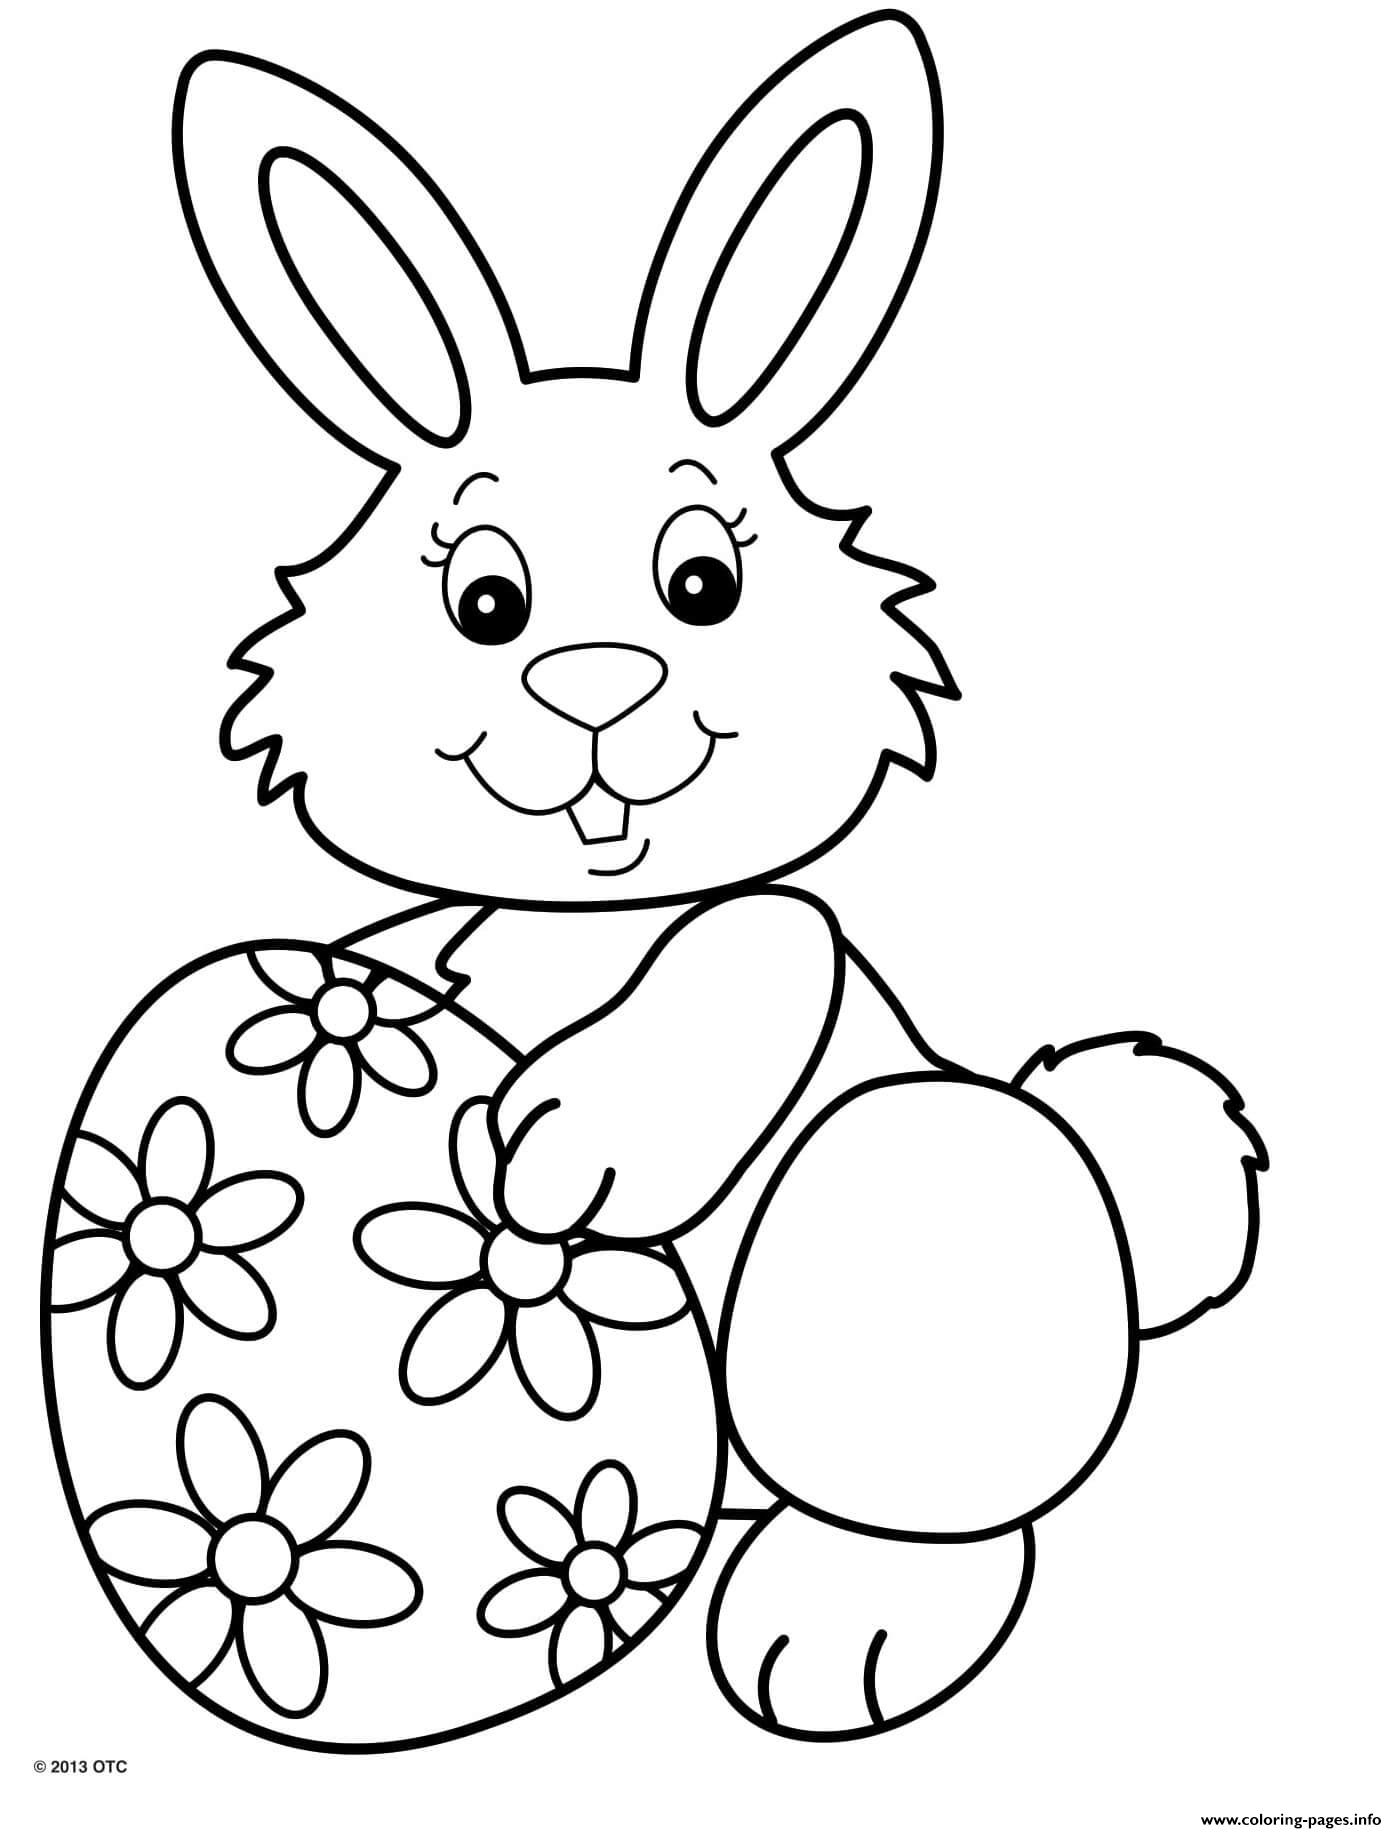 Cute Smile Rabbit With One Egg Flower Pattern Coloring ...